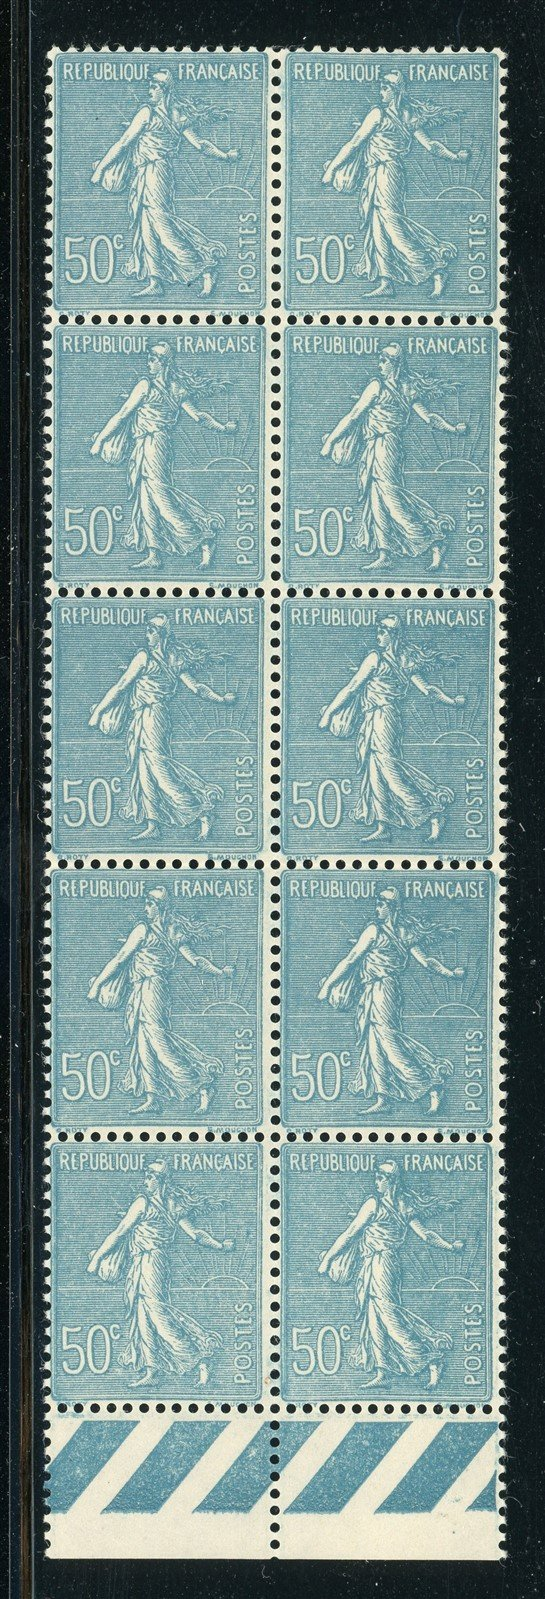 FRANCE MNH: Scott #144 50c Dull Blue Sower (1921) Block of 10 CV$625+